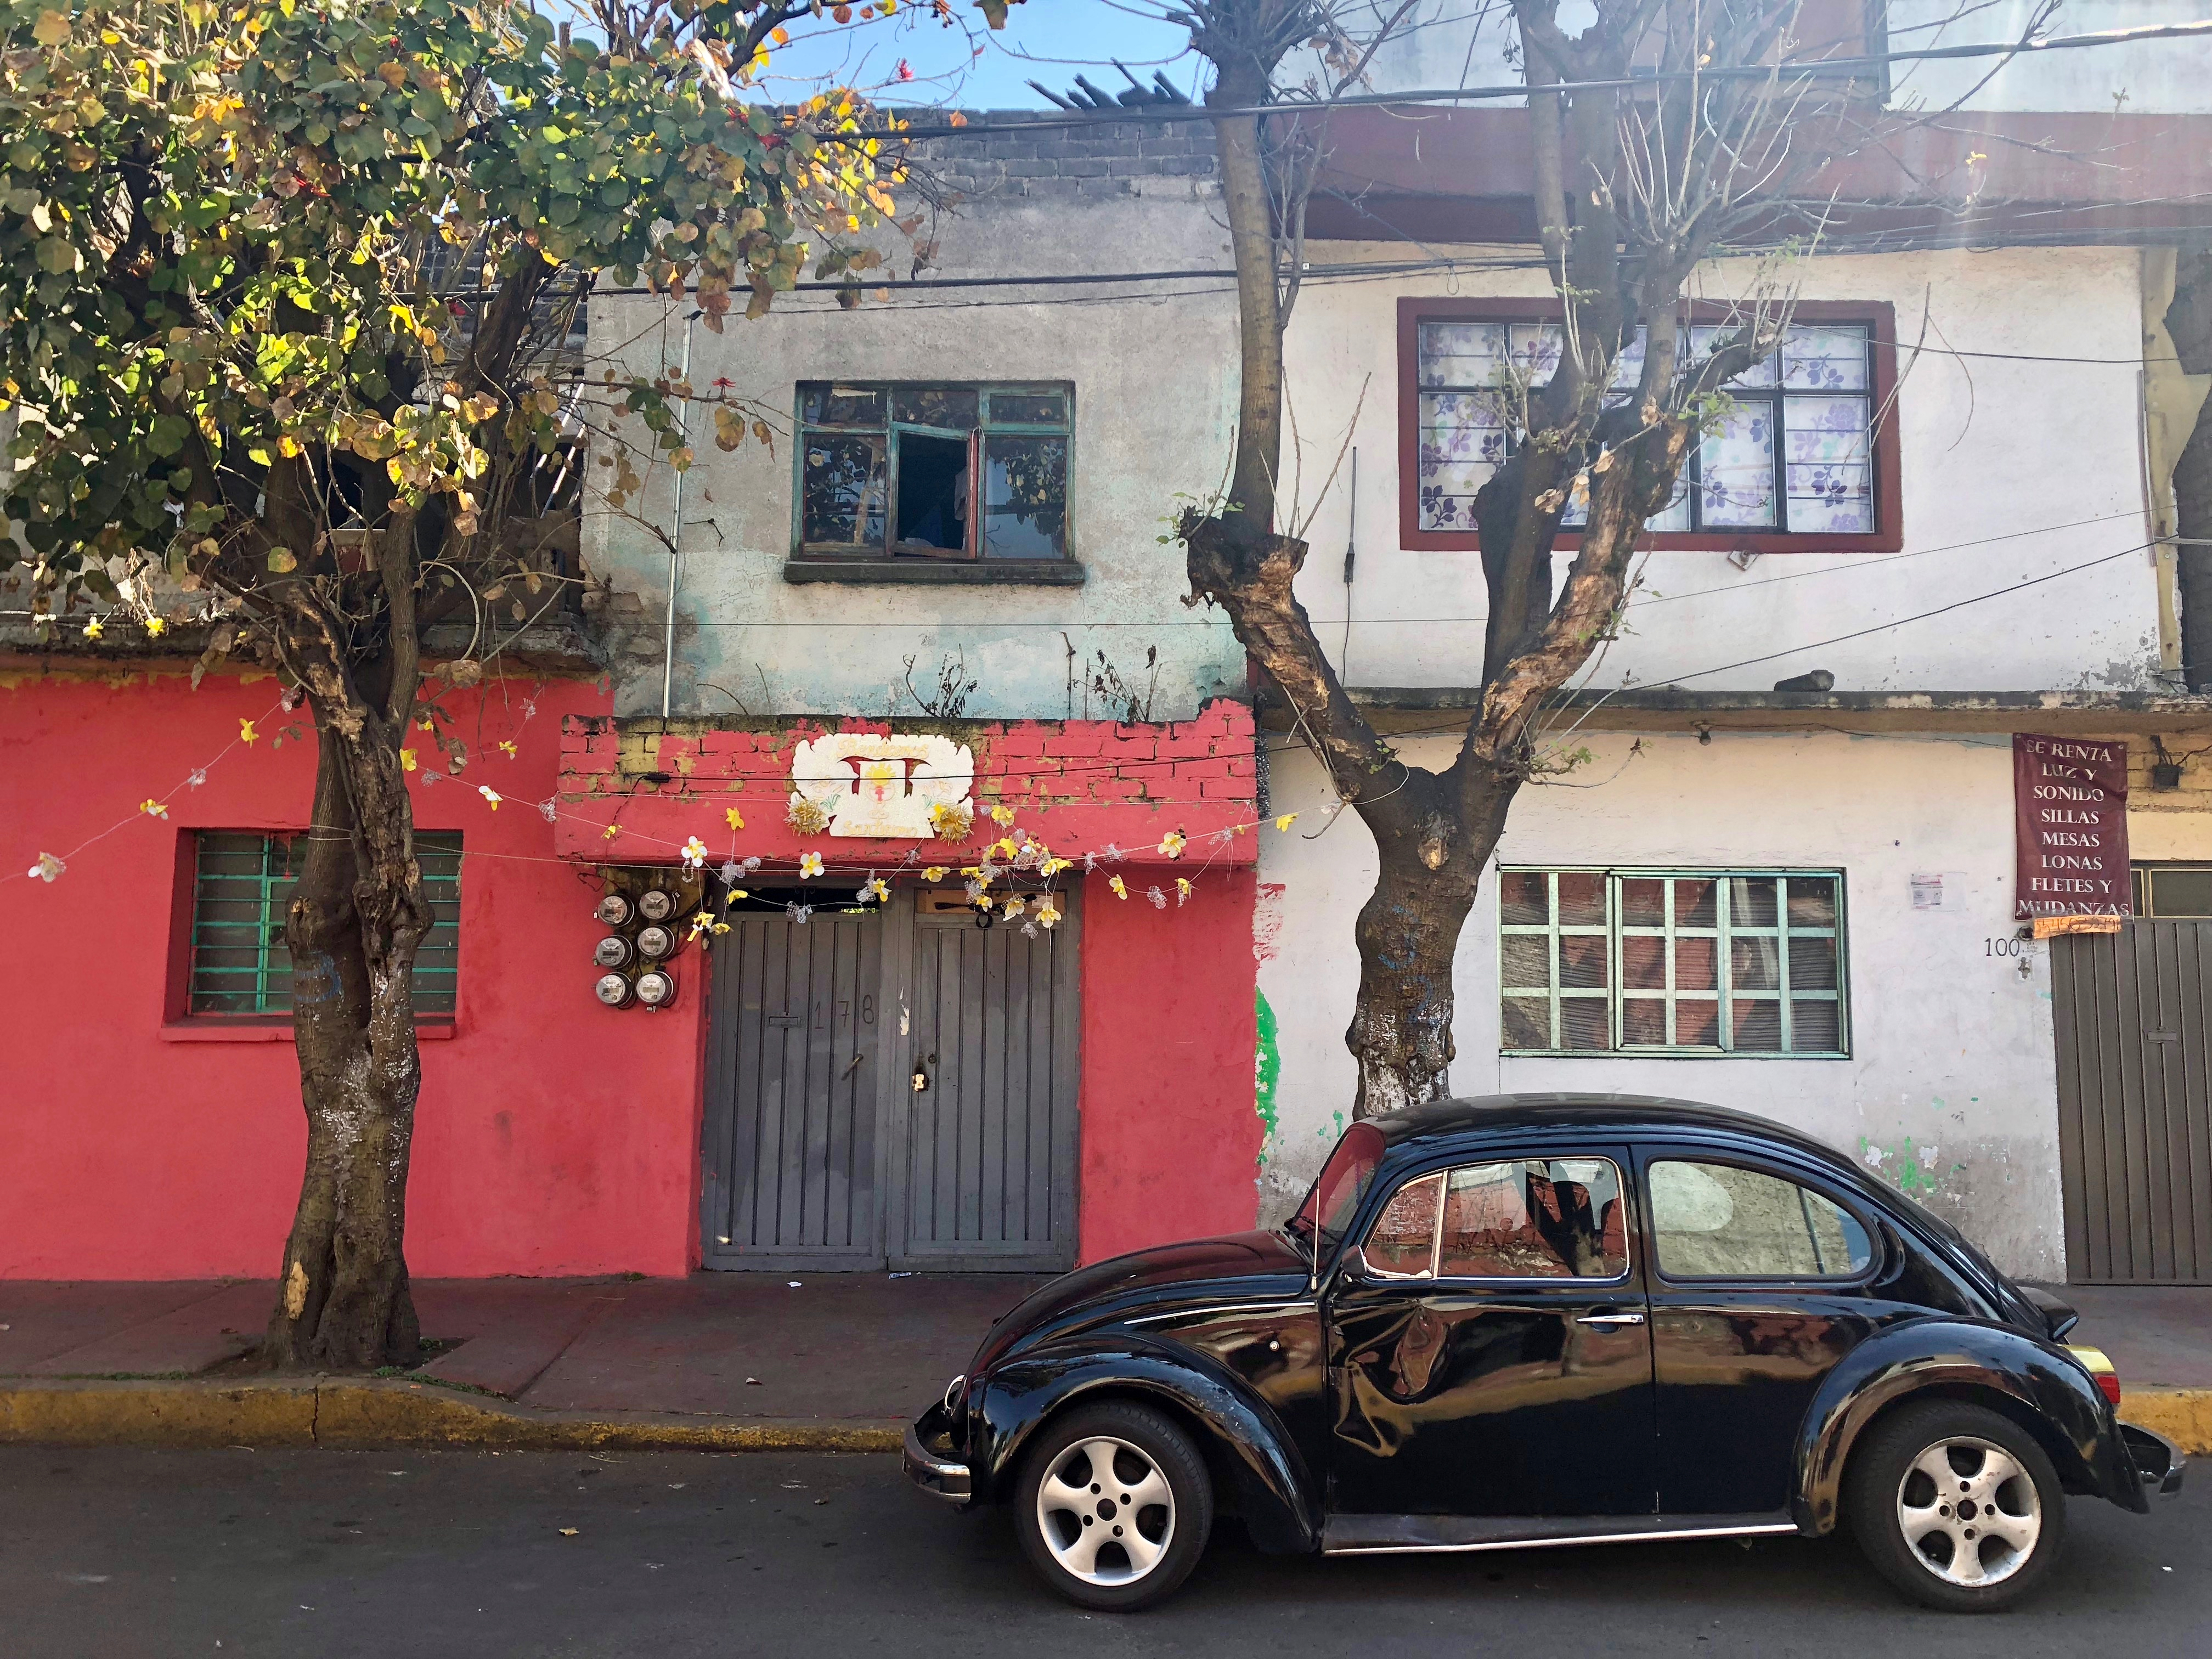 A beaten-up black Volkswagen Beetle is parked along a residential street in Xochimilco, Mexico City, Feb. 2, 2019.